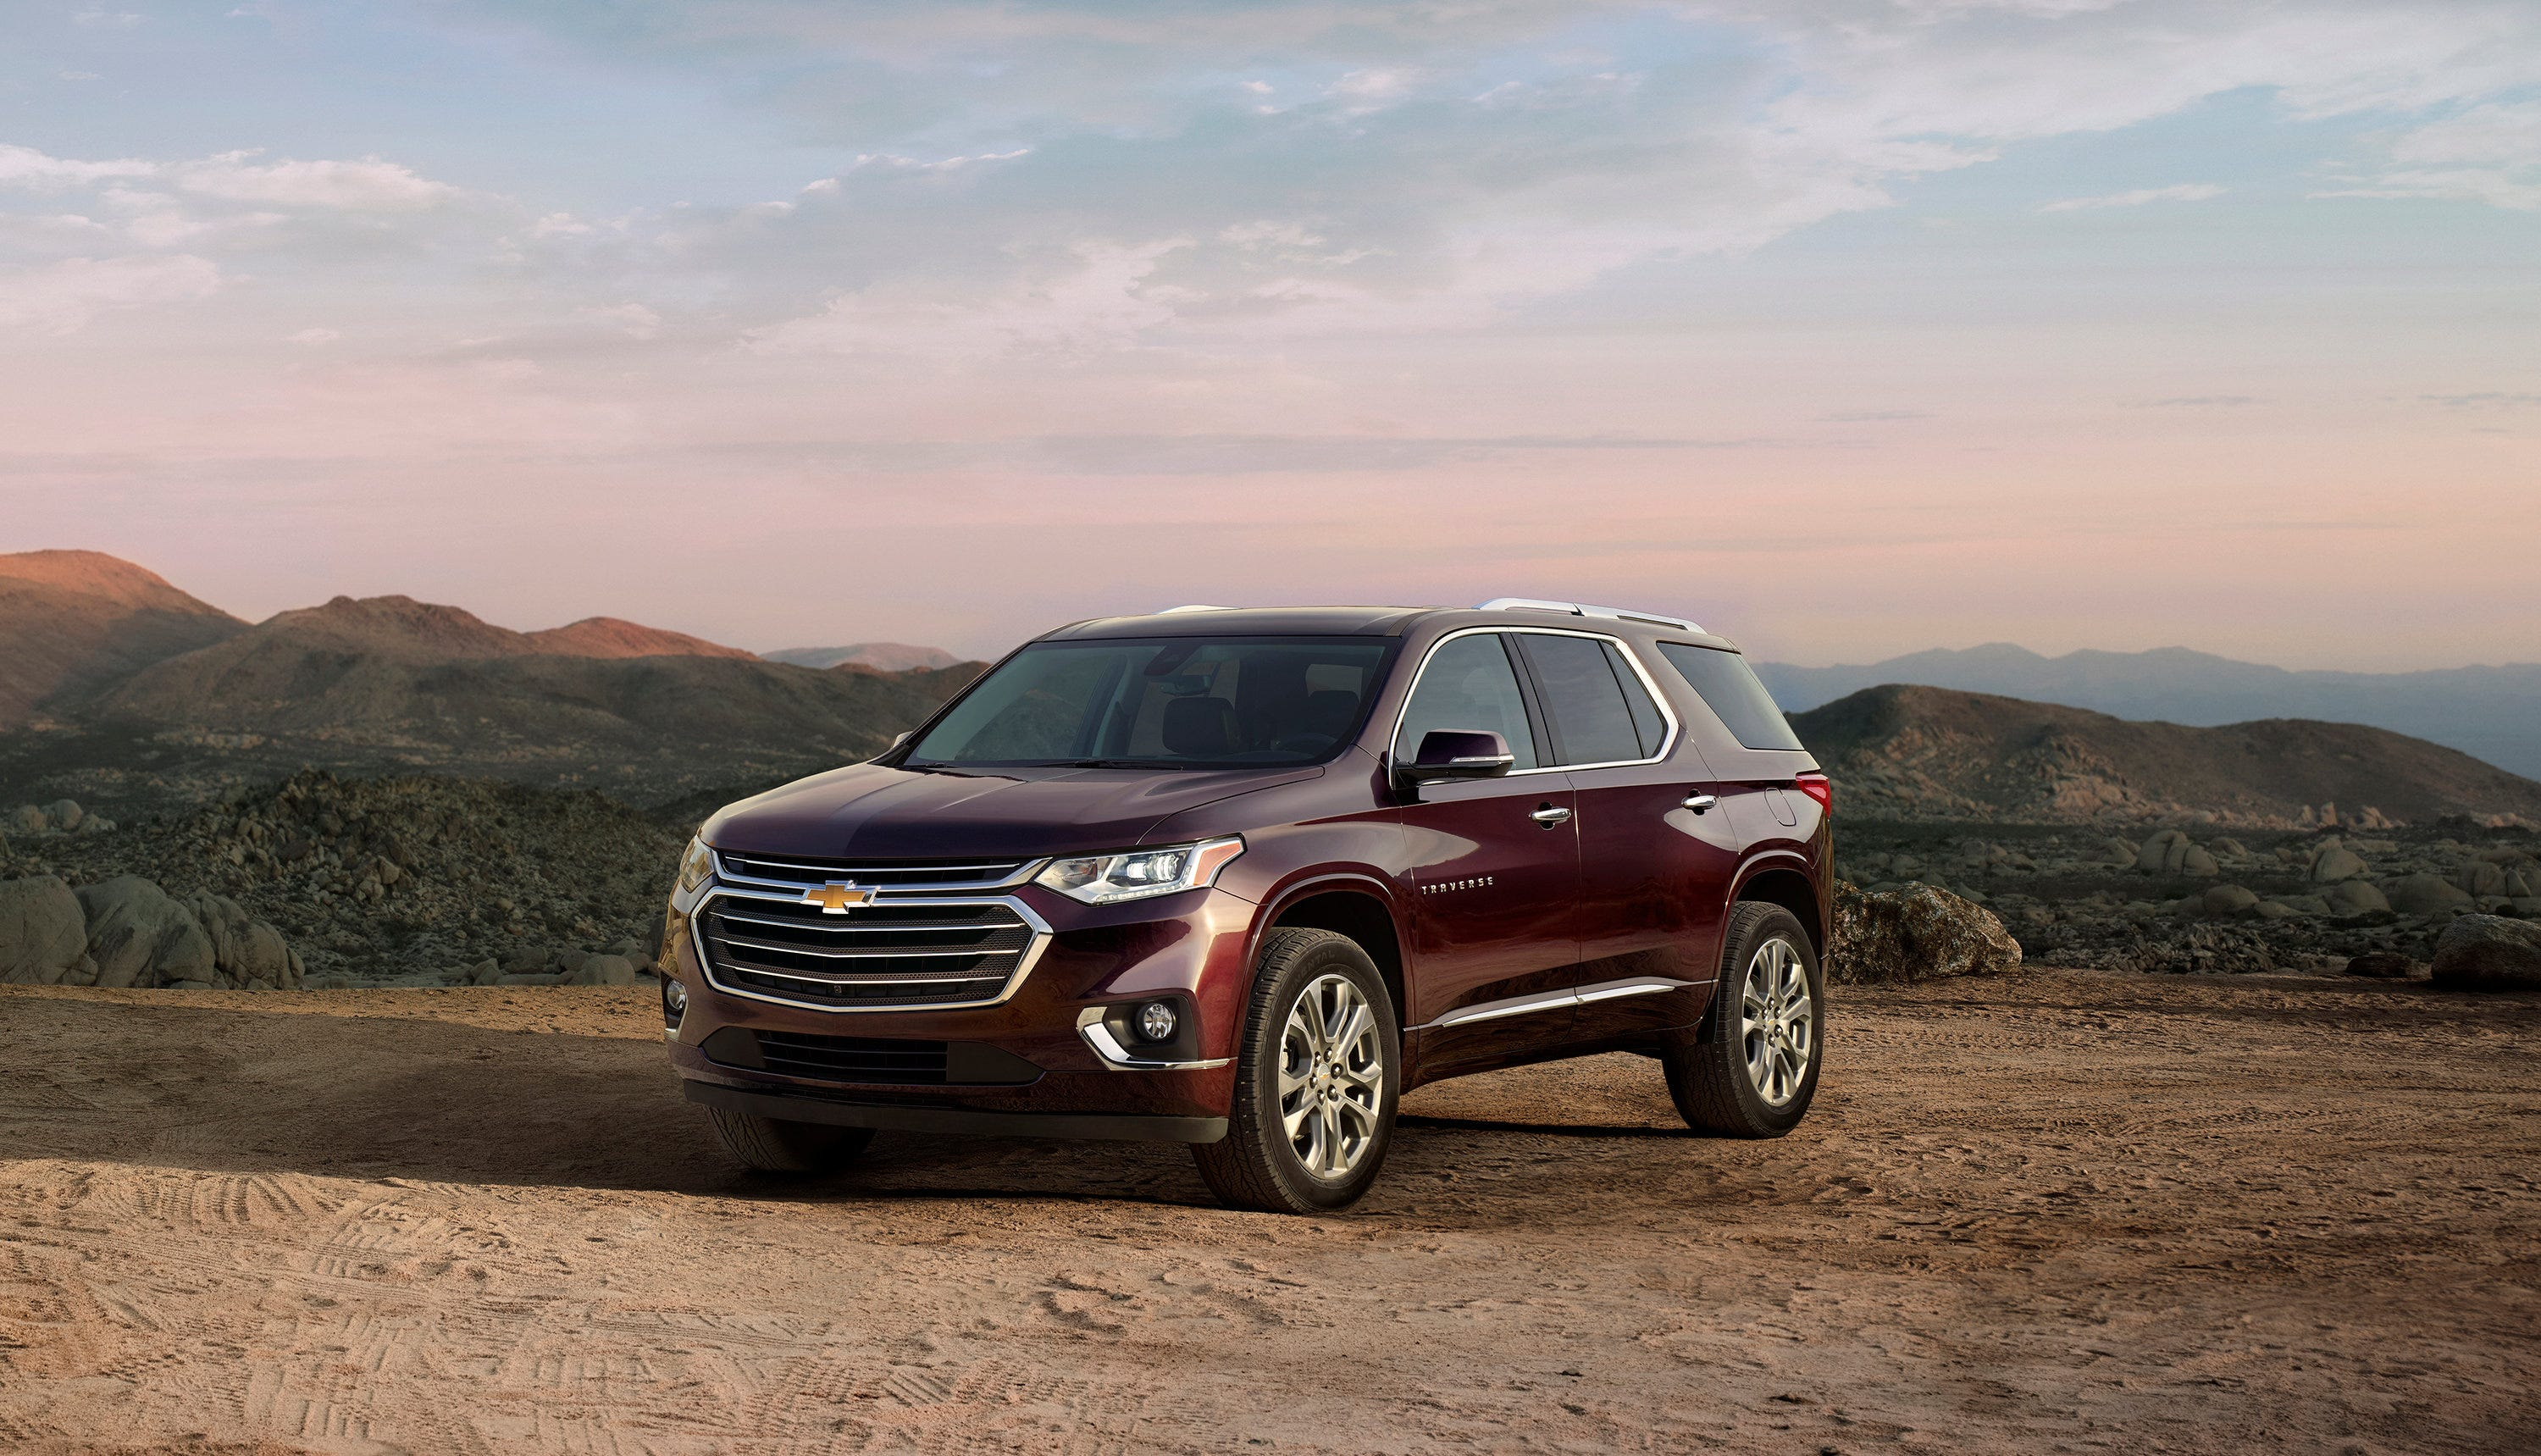 Utility of the Year nominee: The Chevrolet Traverse